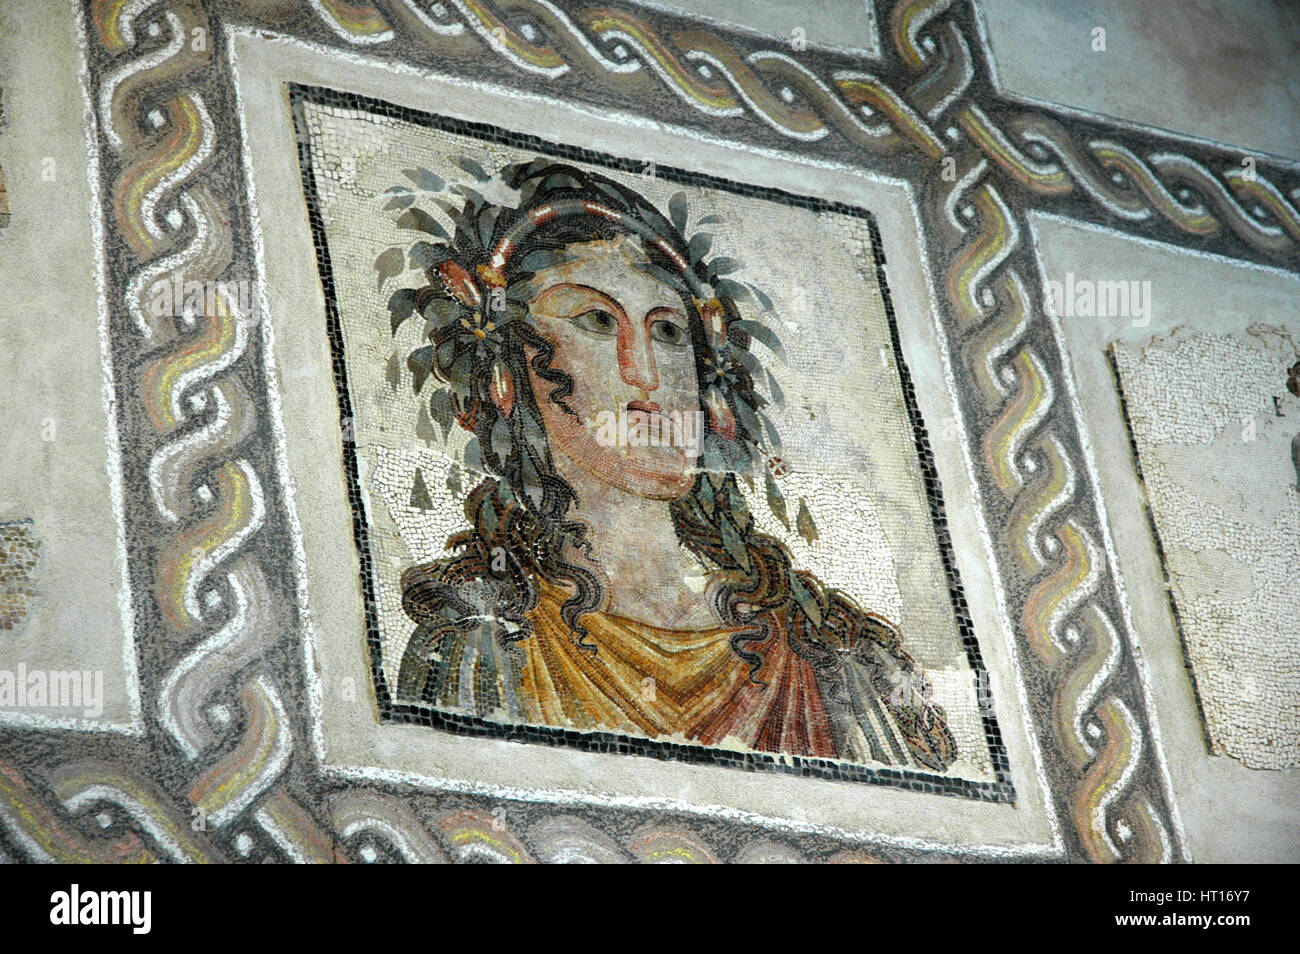 Mosaic of garlanded woman  Culture: Roman.  Period/ Date: 2nd - 3rd C AD.  Place of Origin: House of Artist: Werner - Stock Image